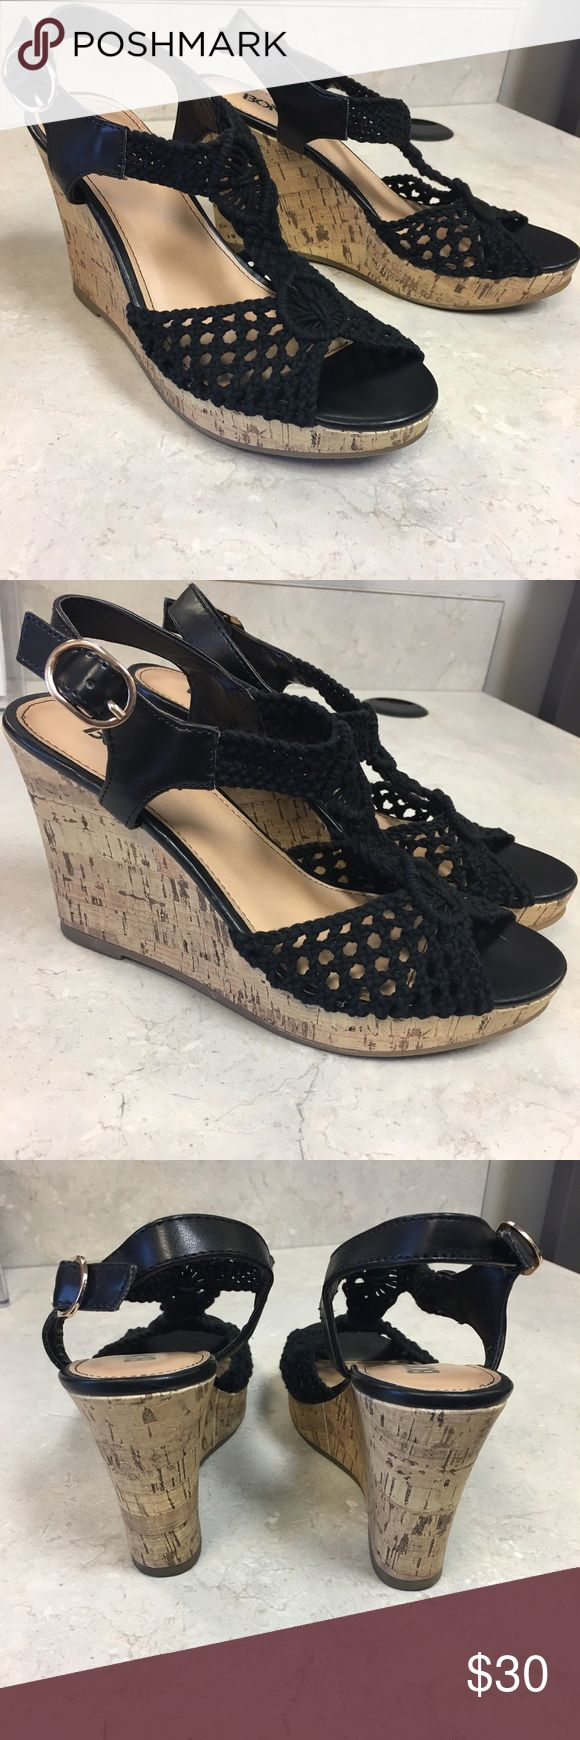 BONGO black sandal wedges LIKE NEW, WORN ONCE! Women's size 7 black BONGO dress sandal wedges. These are like brand new, was worn once to a special occasion. Excellent condition as pictured.  ✨Crochet upper ✨3in. Faux cork wedge heel ✨Buckle closure. 💥Open to offers BONGO Shoes Wedges